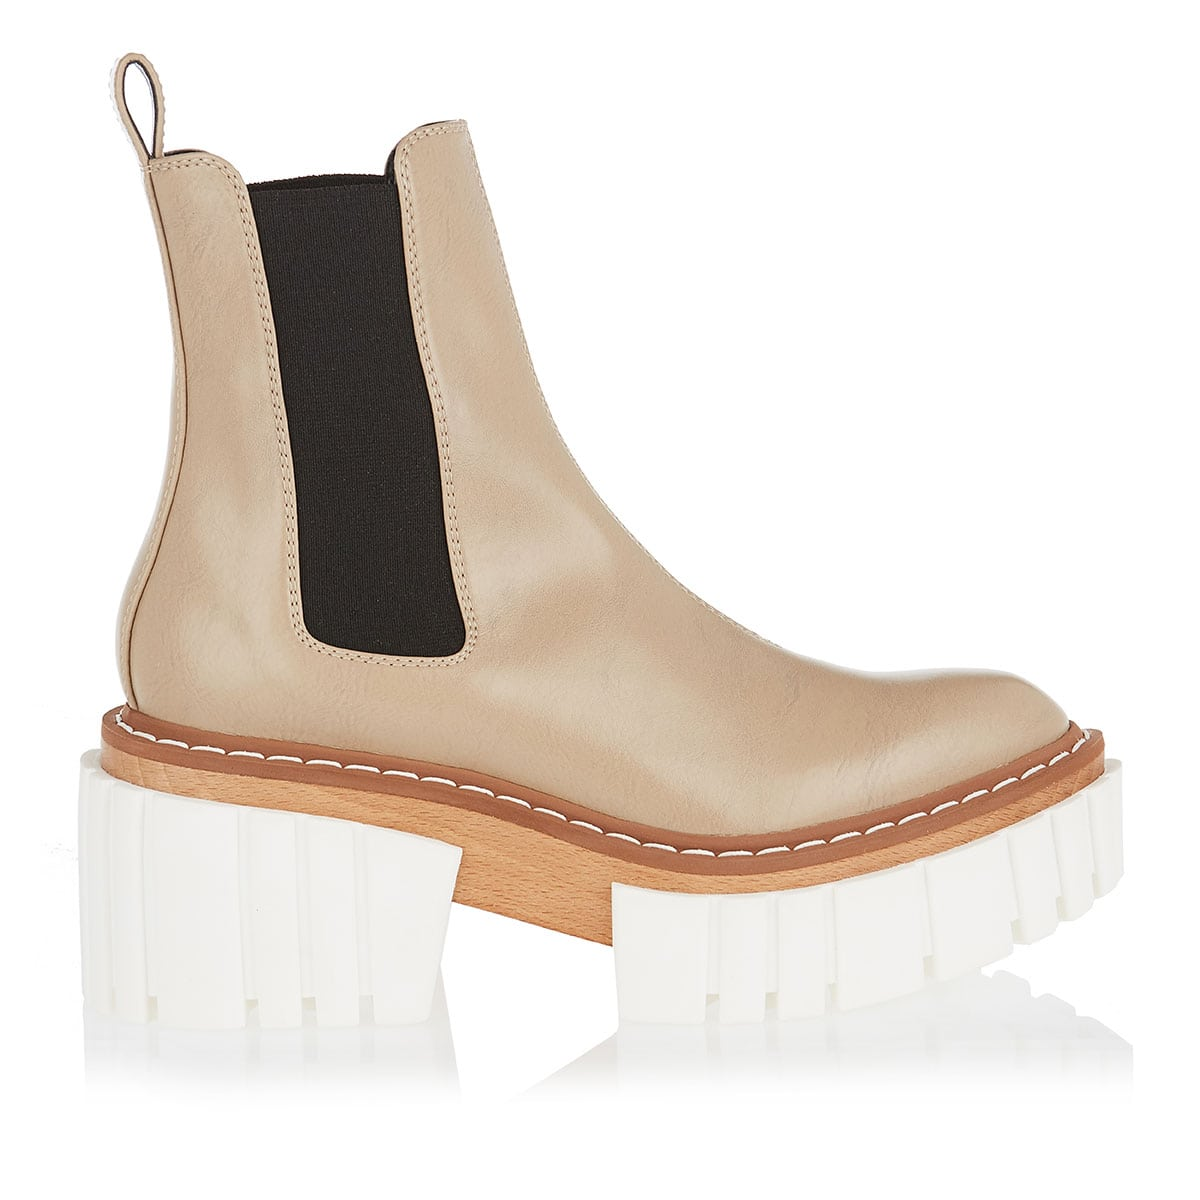 Emilie chunky ankle boots